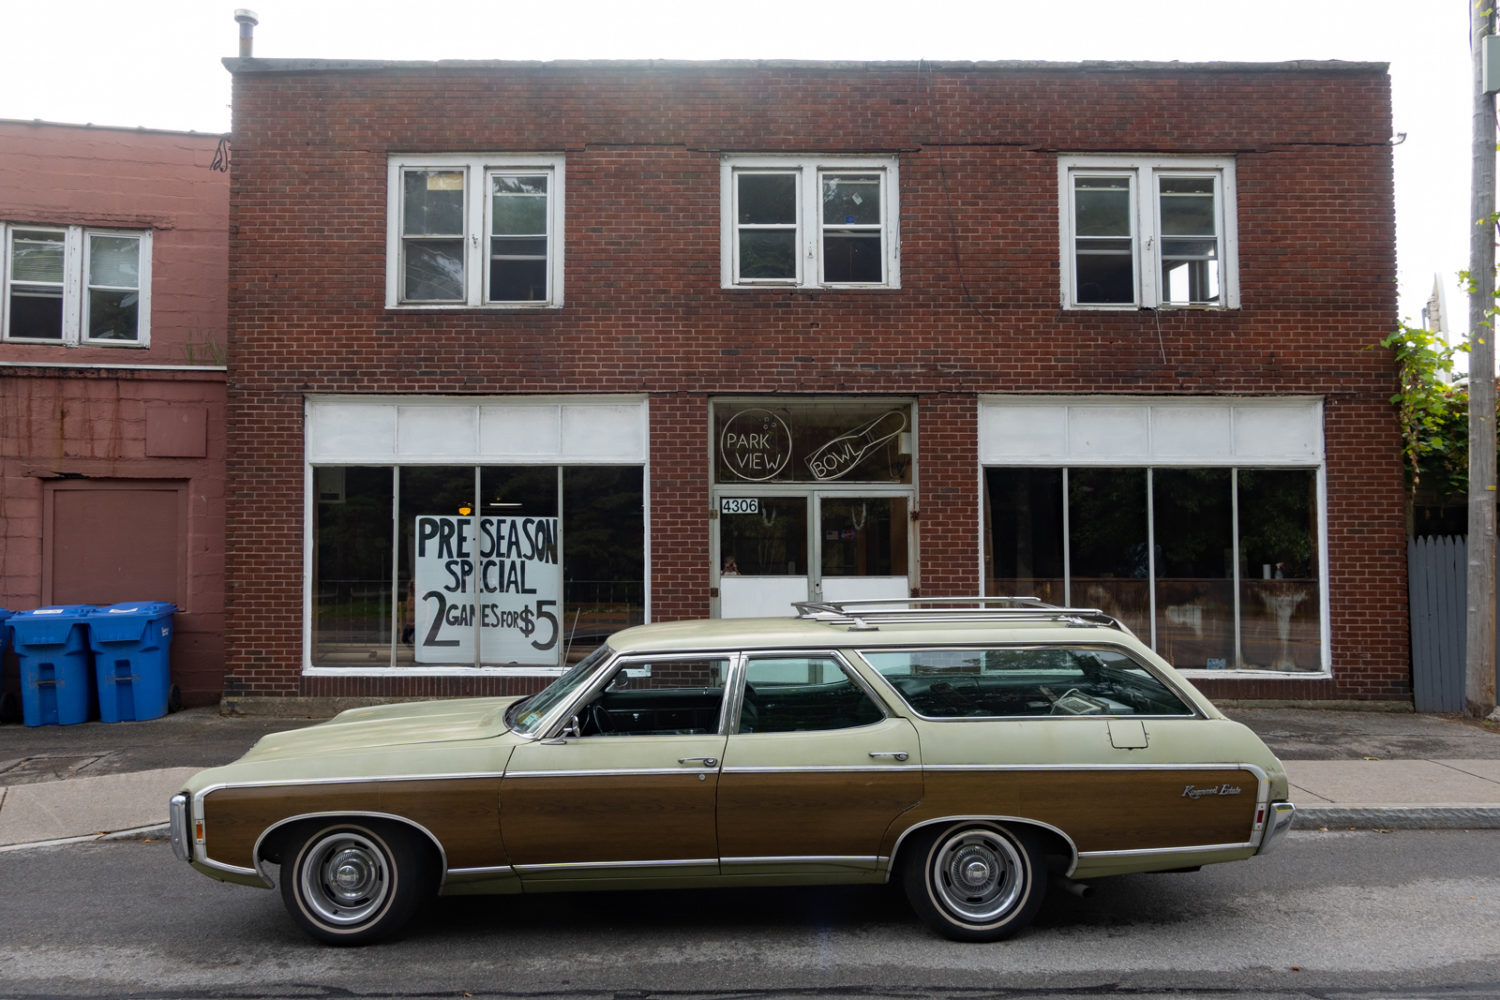 Chevy Kingswood Estate parked outside if Park View Lanes in Rochester, New York